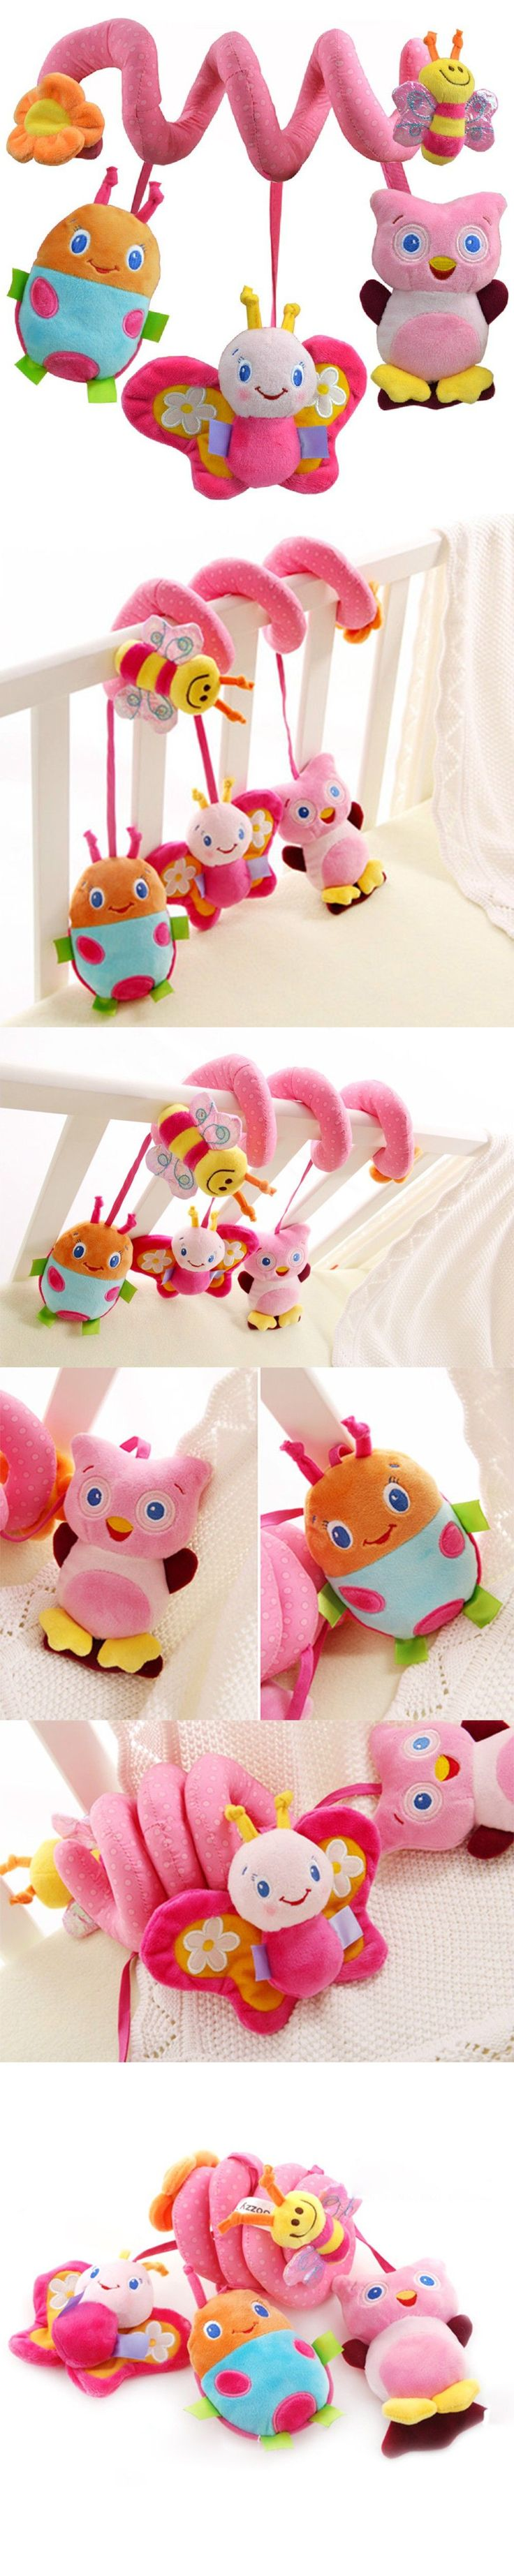 HOT Sale Baby Cot Spiral Activity Hanging Decoration Toys for Cot/Car Seat/Pram Gifts baby toys 0-12 months